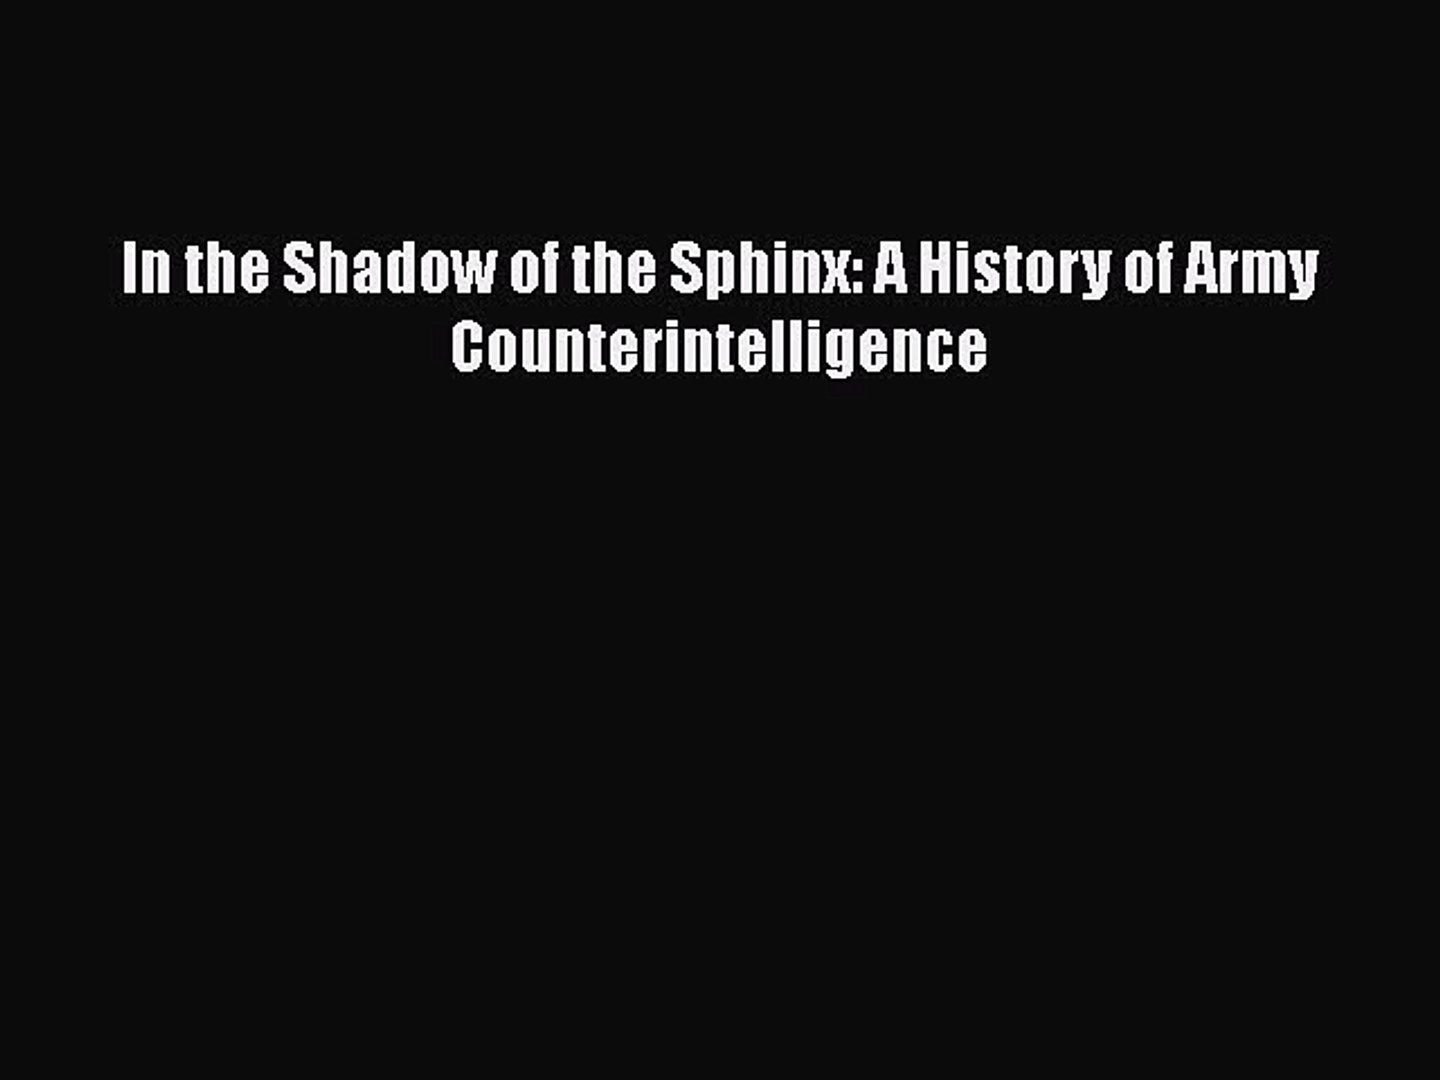 [Read book] In the Shadow of the Sphinx: A History of Army Counterintelligence [Download] Full